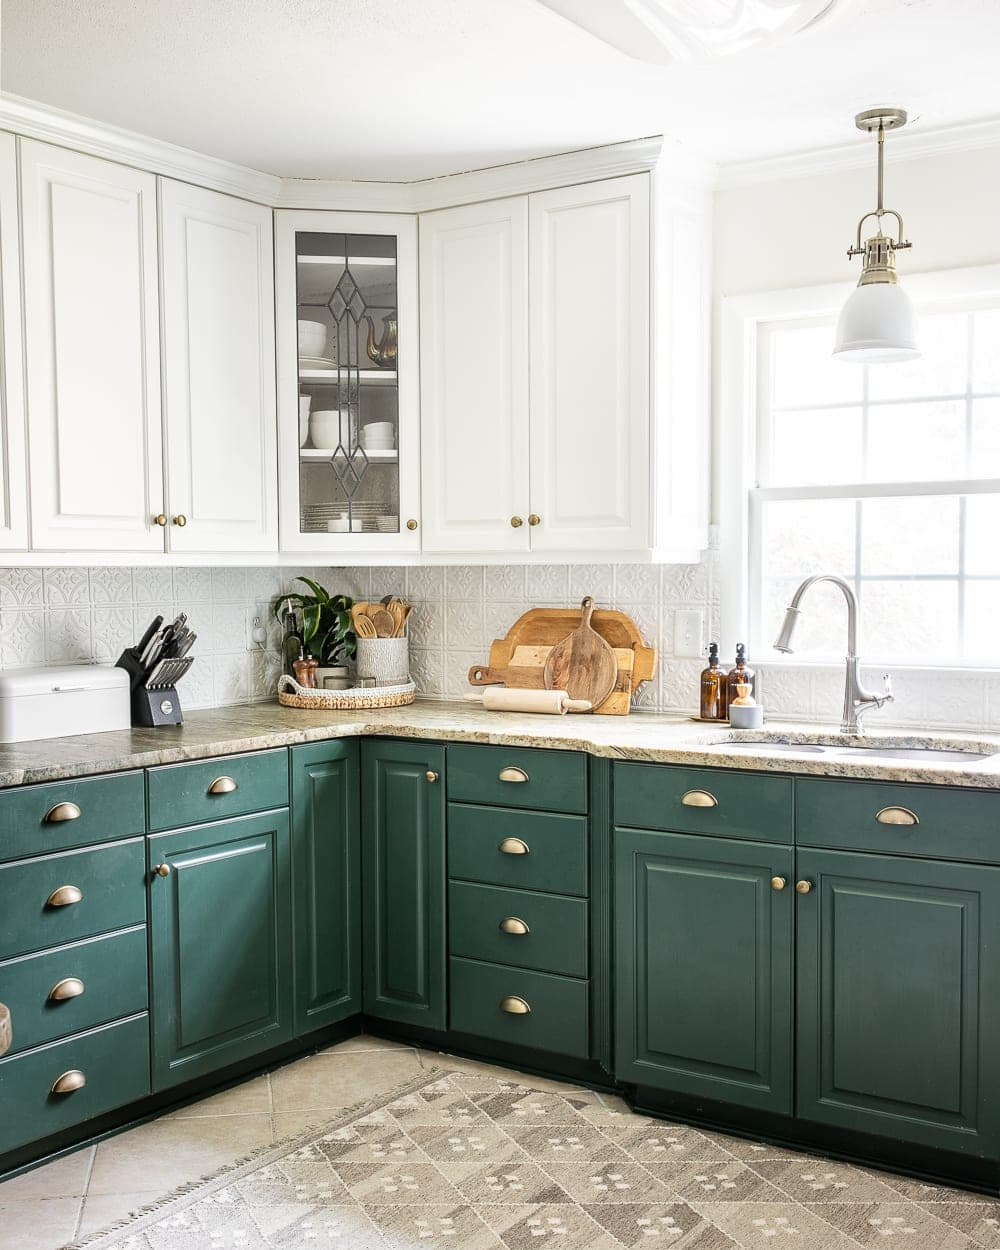 cutting boards, tray, and bread box as kitchen counter decor